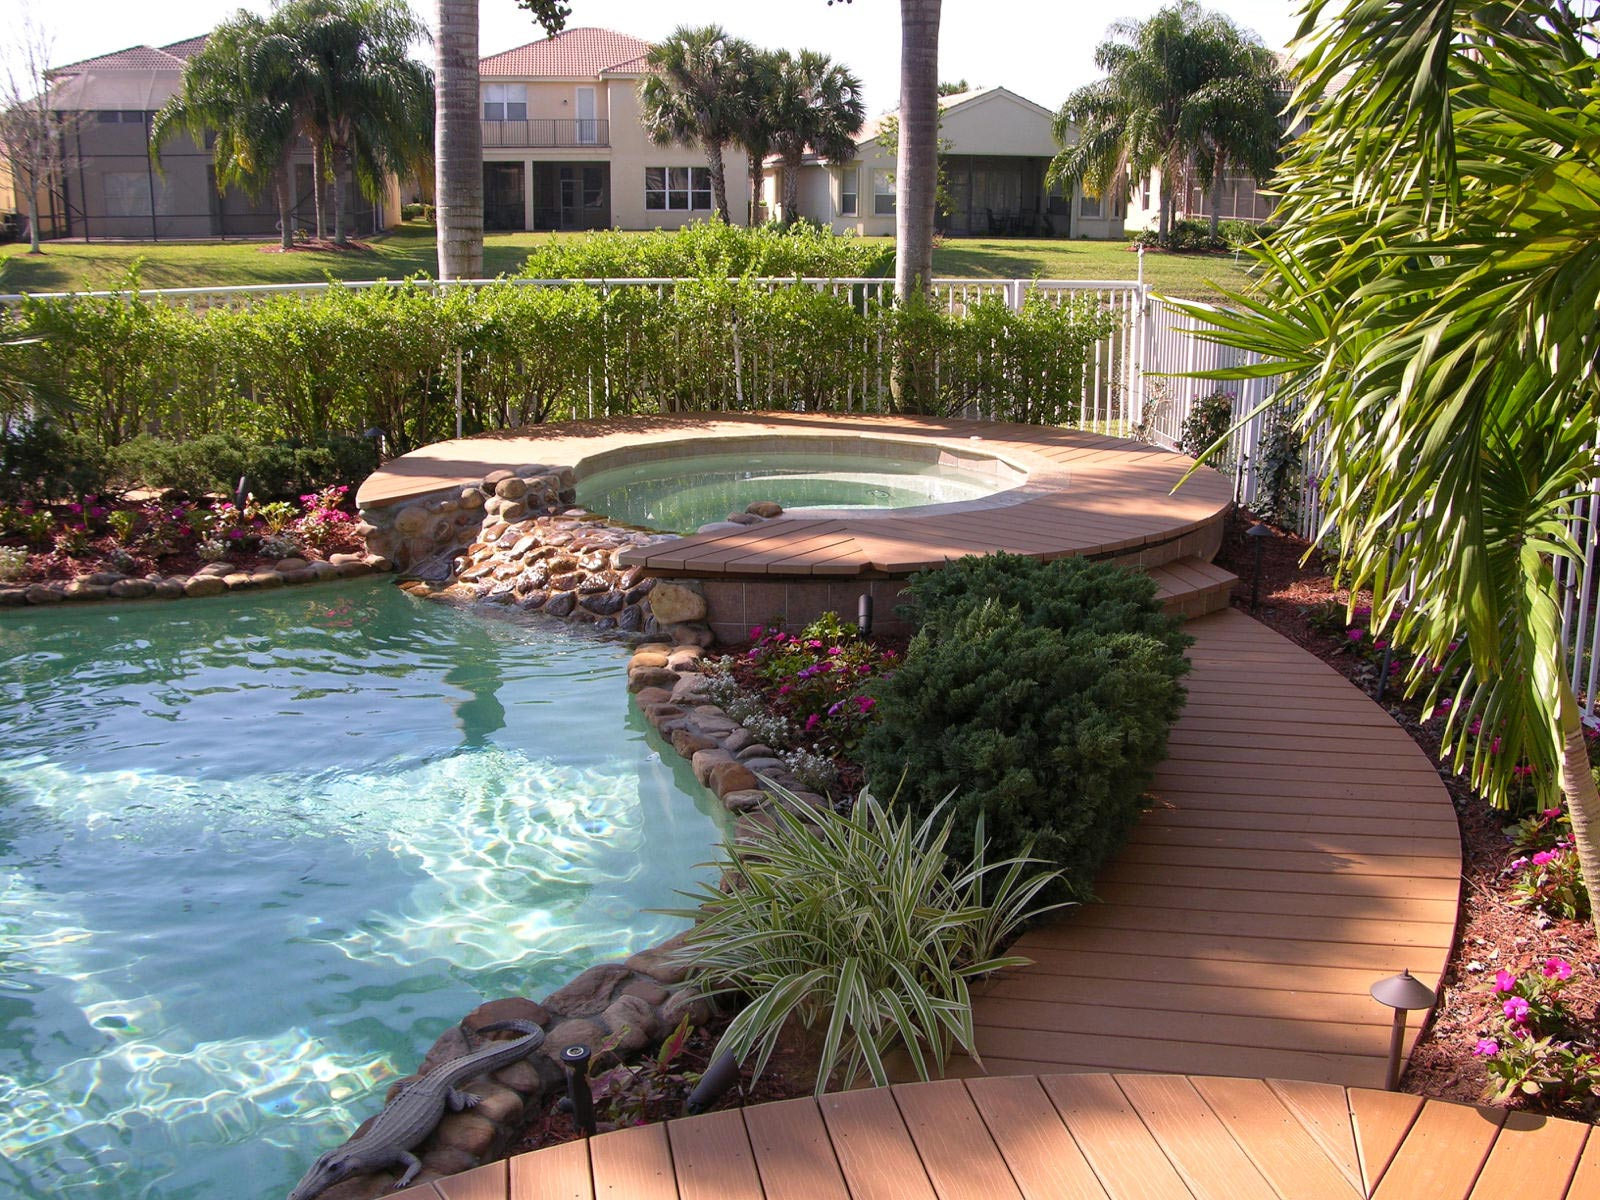 Pool and hot tub with decking